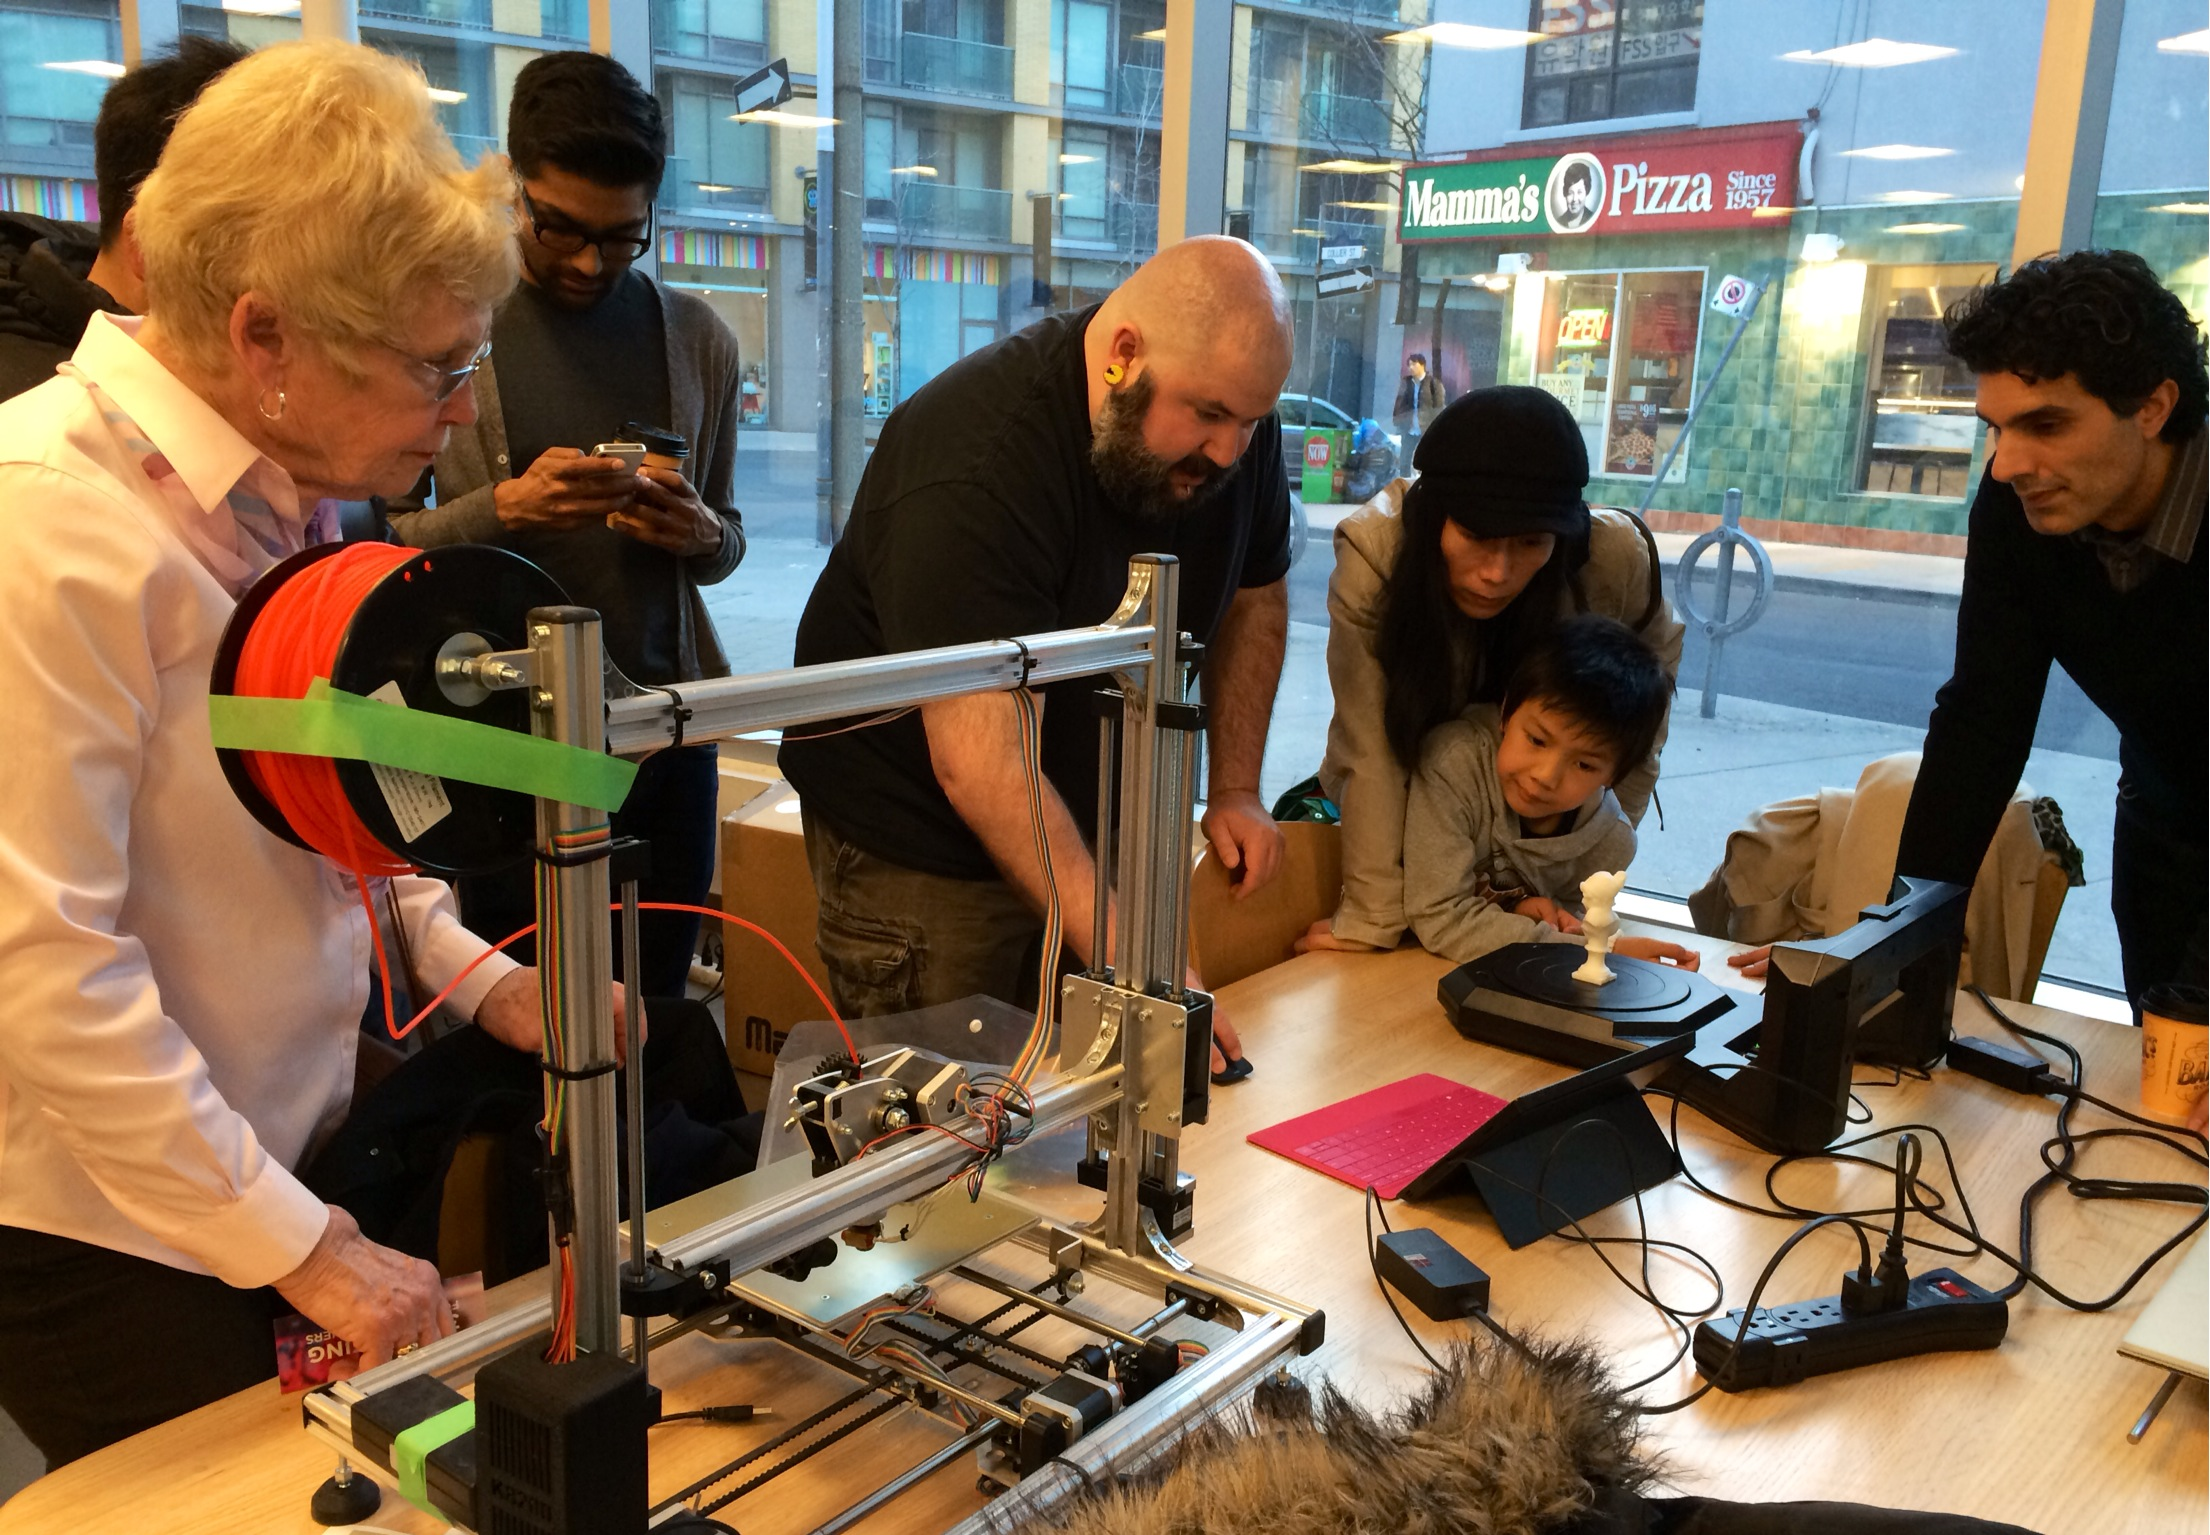 Makerbot public library